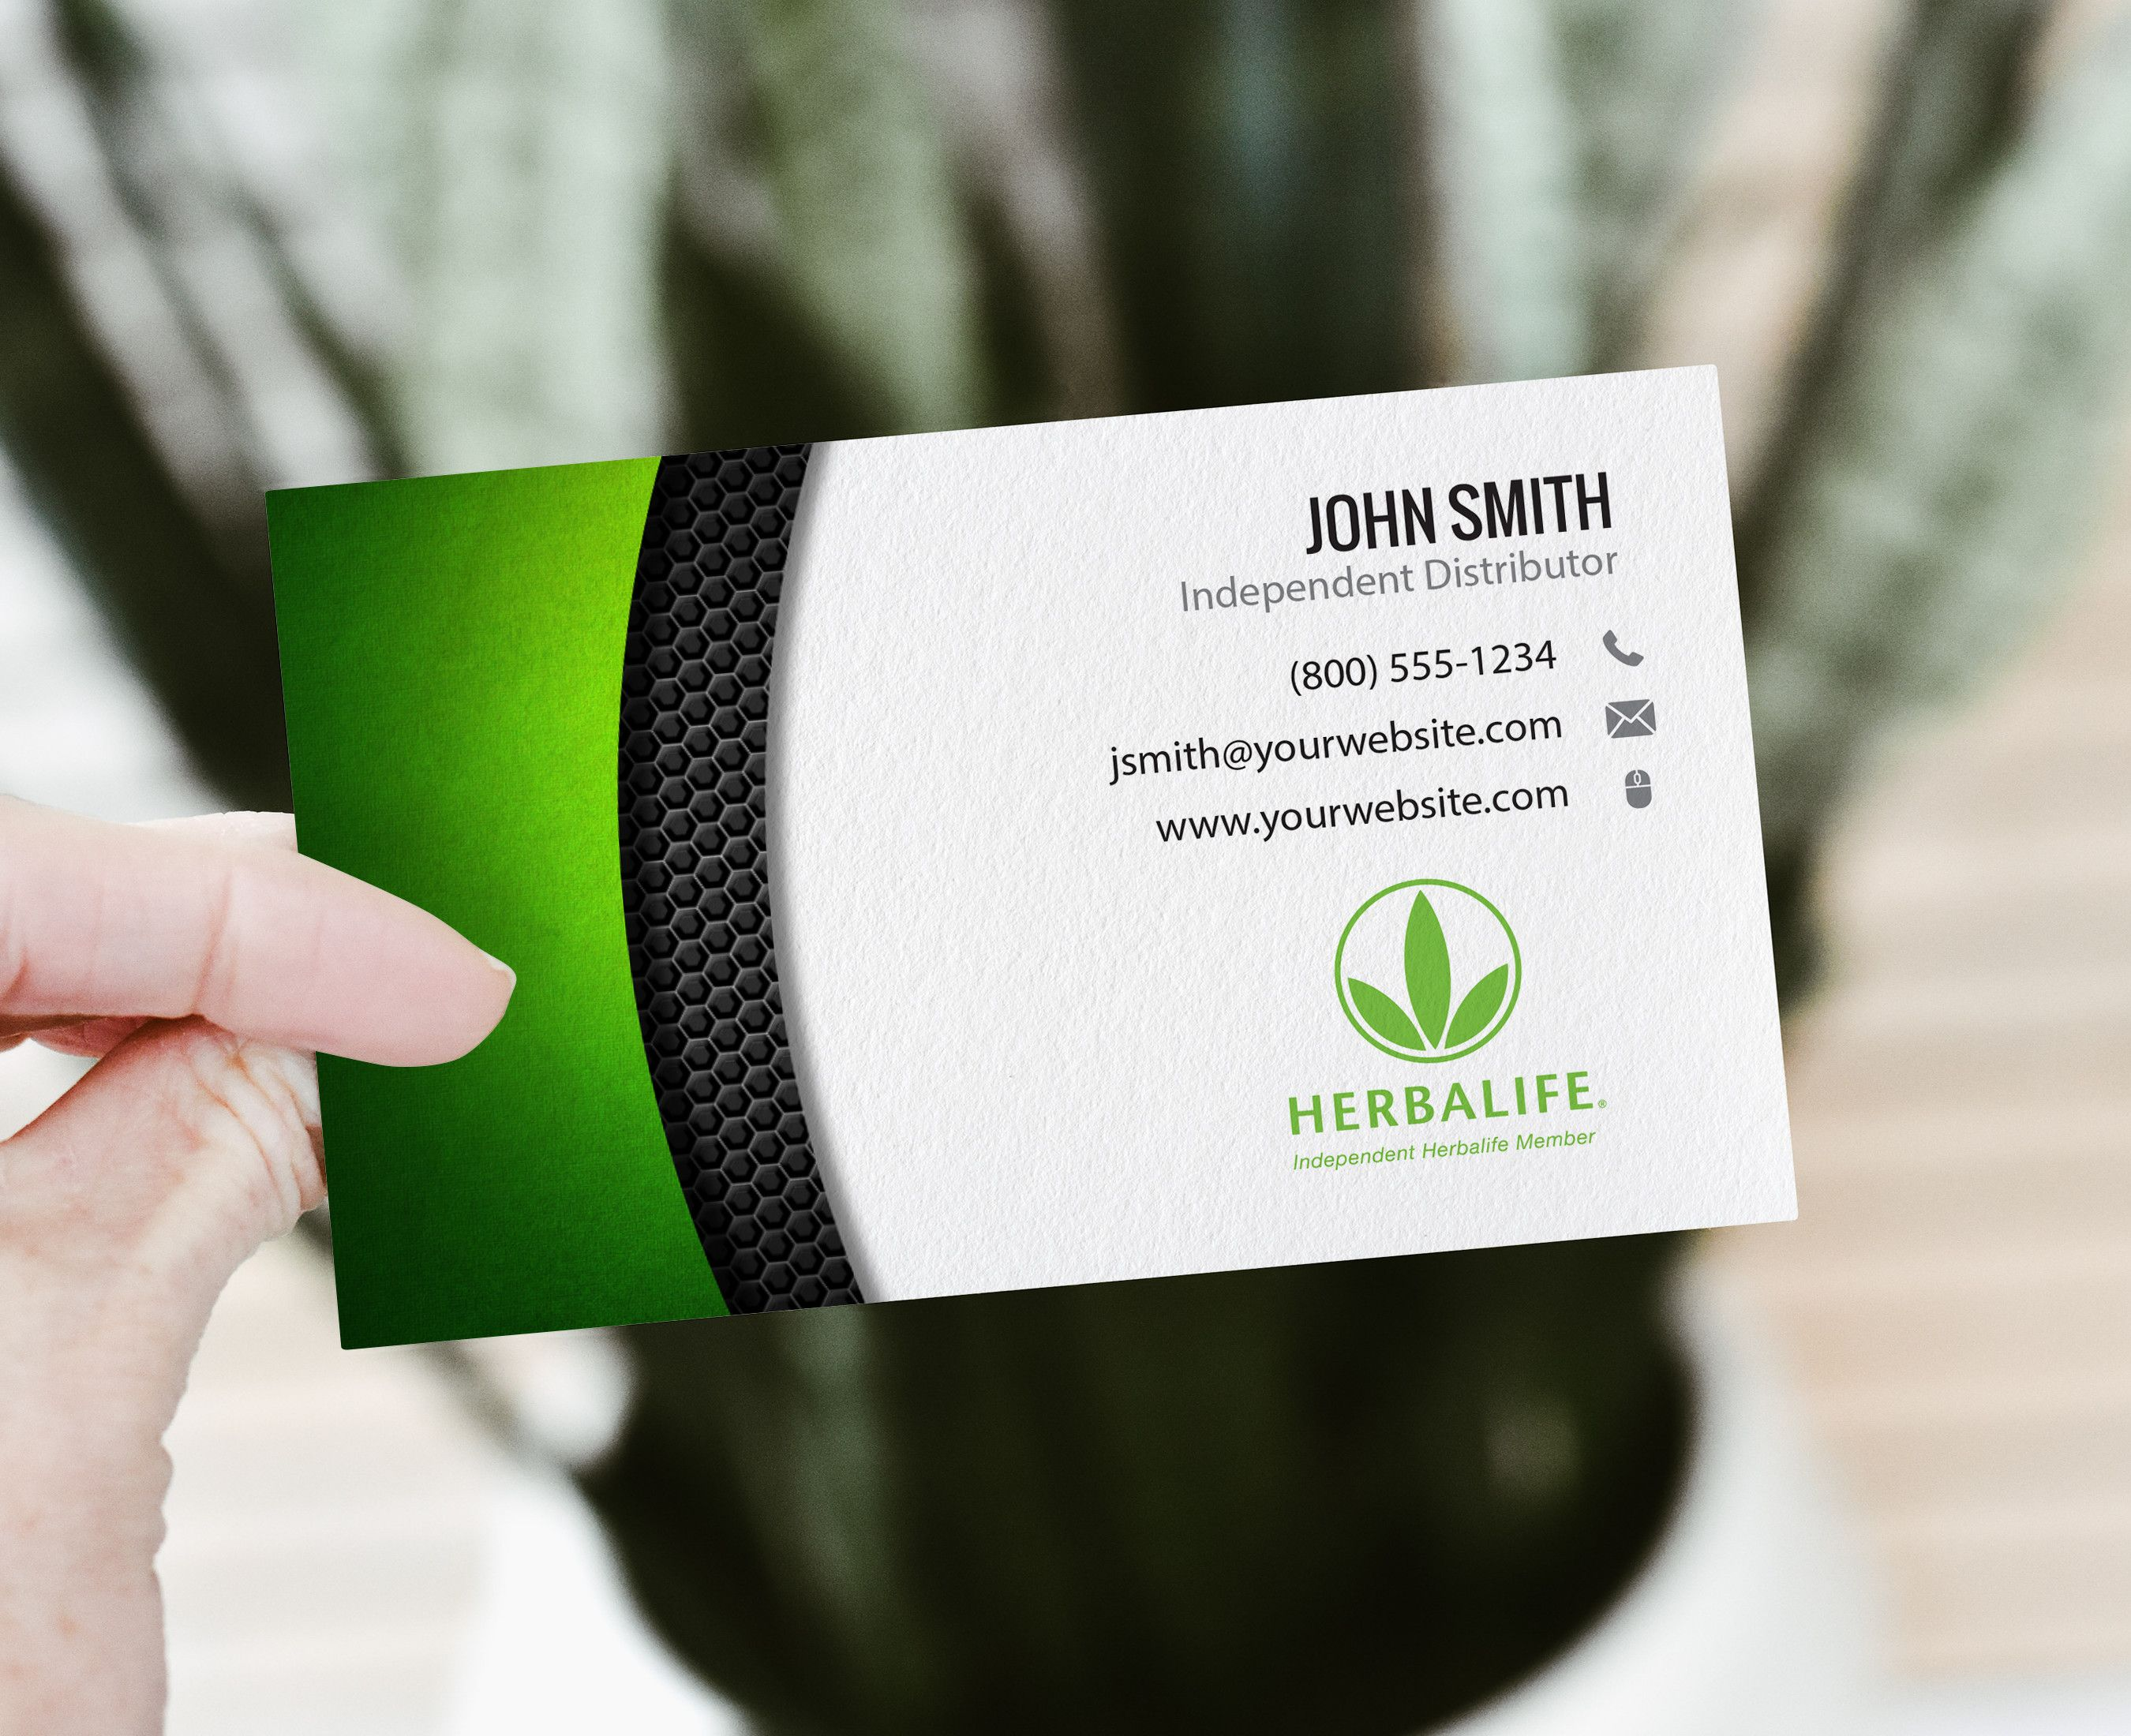 Our New Herbalife Business Cards Are Ready Mlm Herbalife Distributors Wellness Nutrition Weightlo Herbalife Business Cards Herbalife Herbalife Business